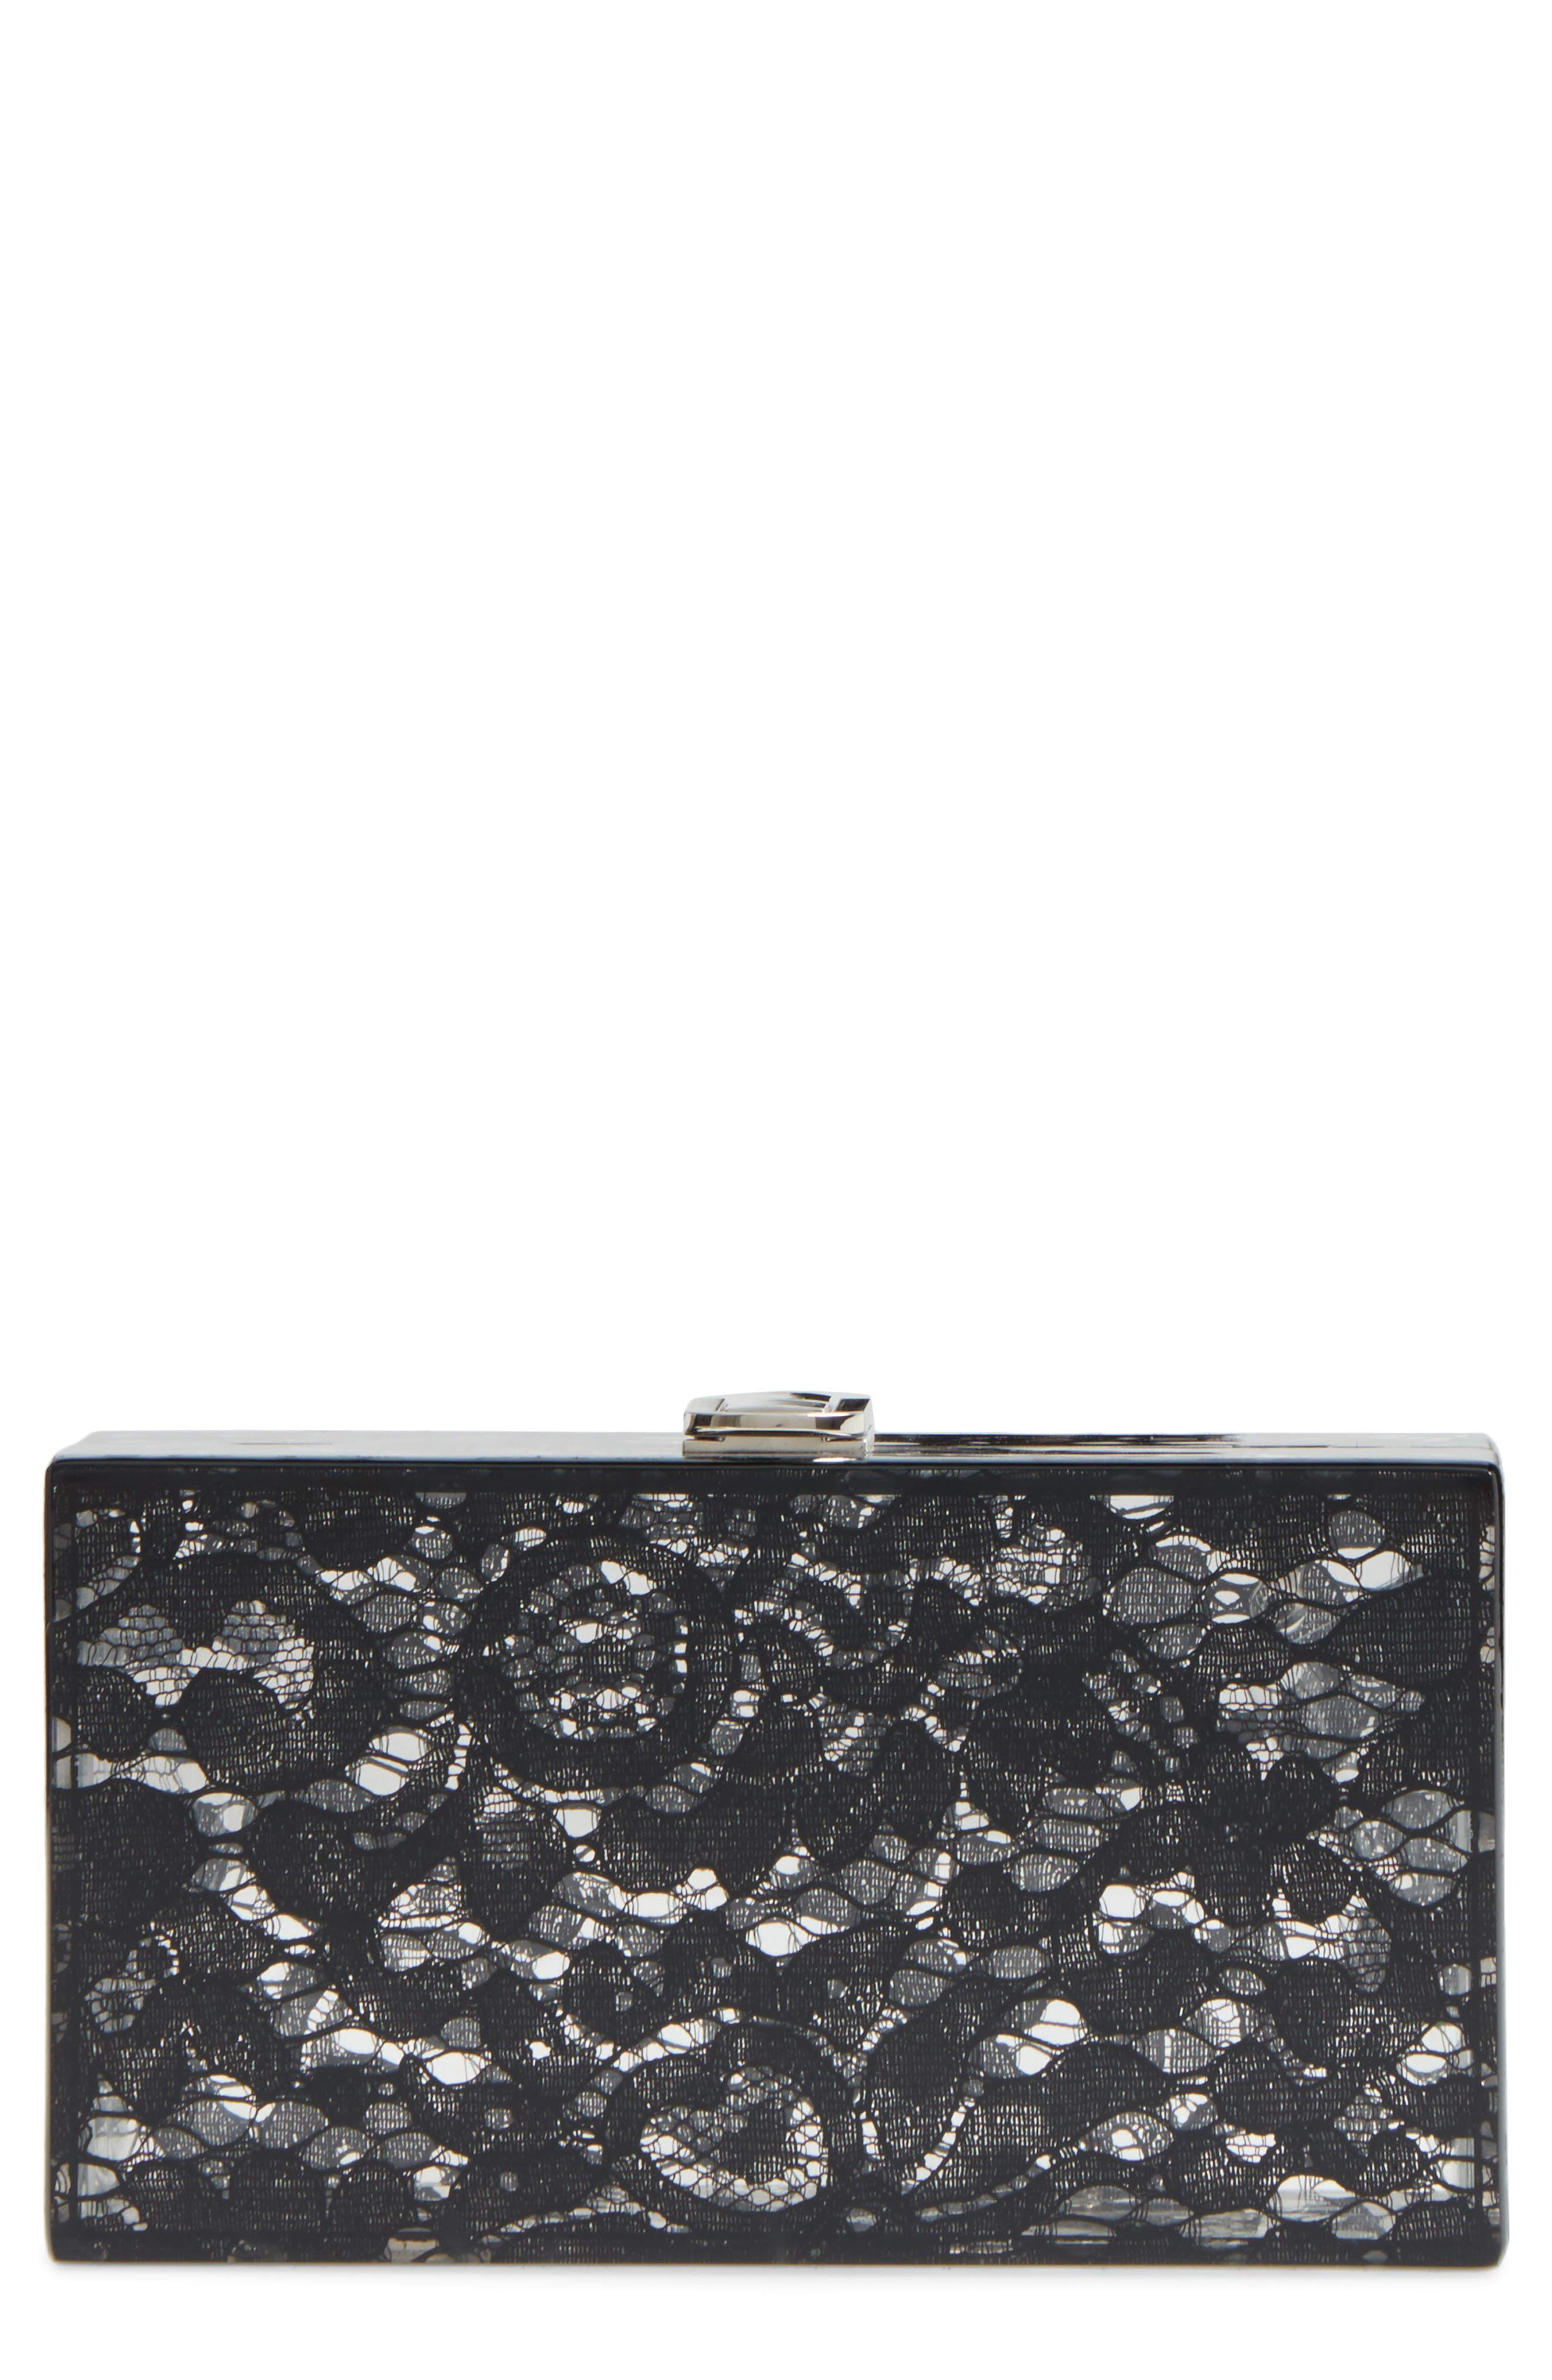 Main Image - Nordstrom Transparent Lace Box Clutch